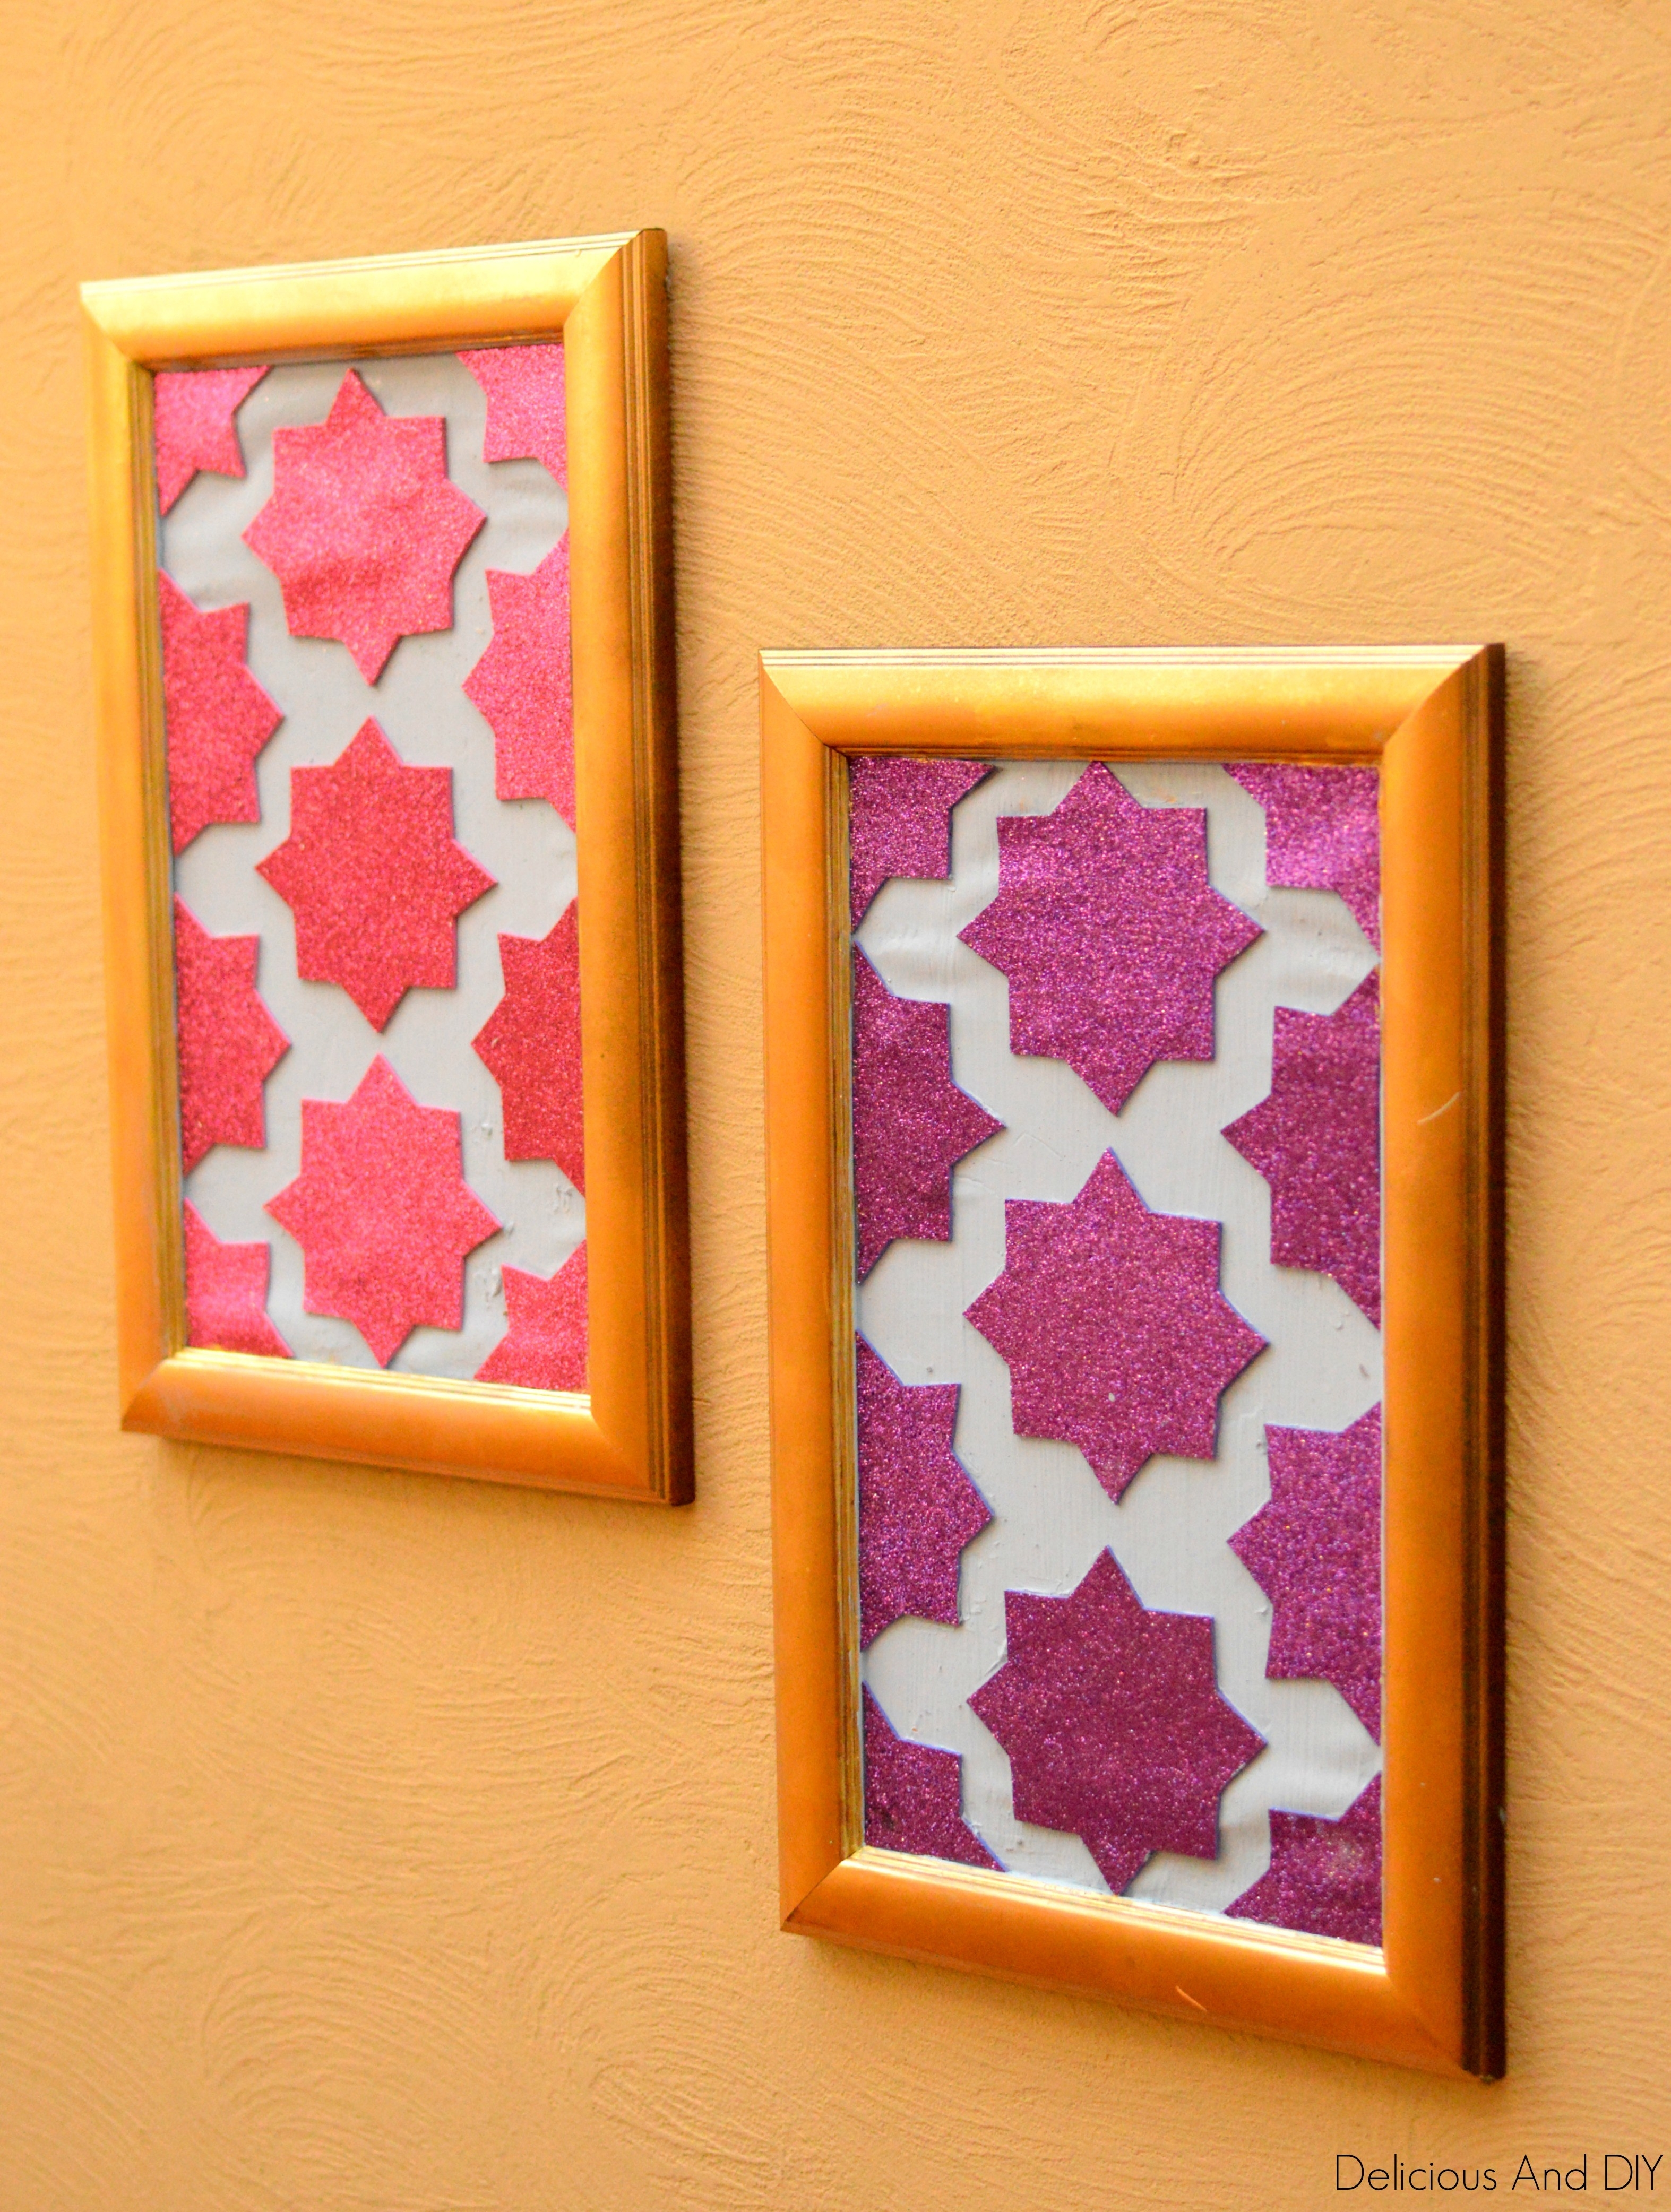 Diy Moroccan Wall Art - Delicious And Diy within Moroccan Wall Art (Image 2 of 20)